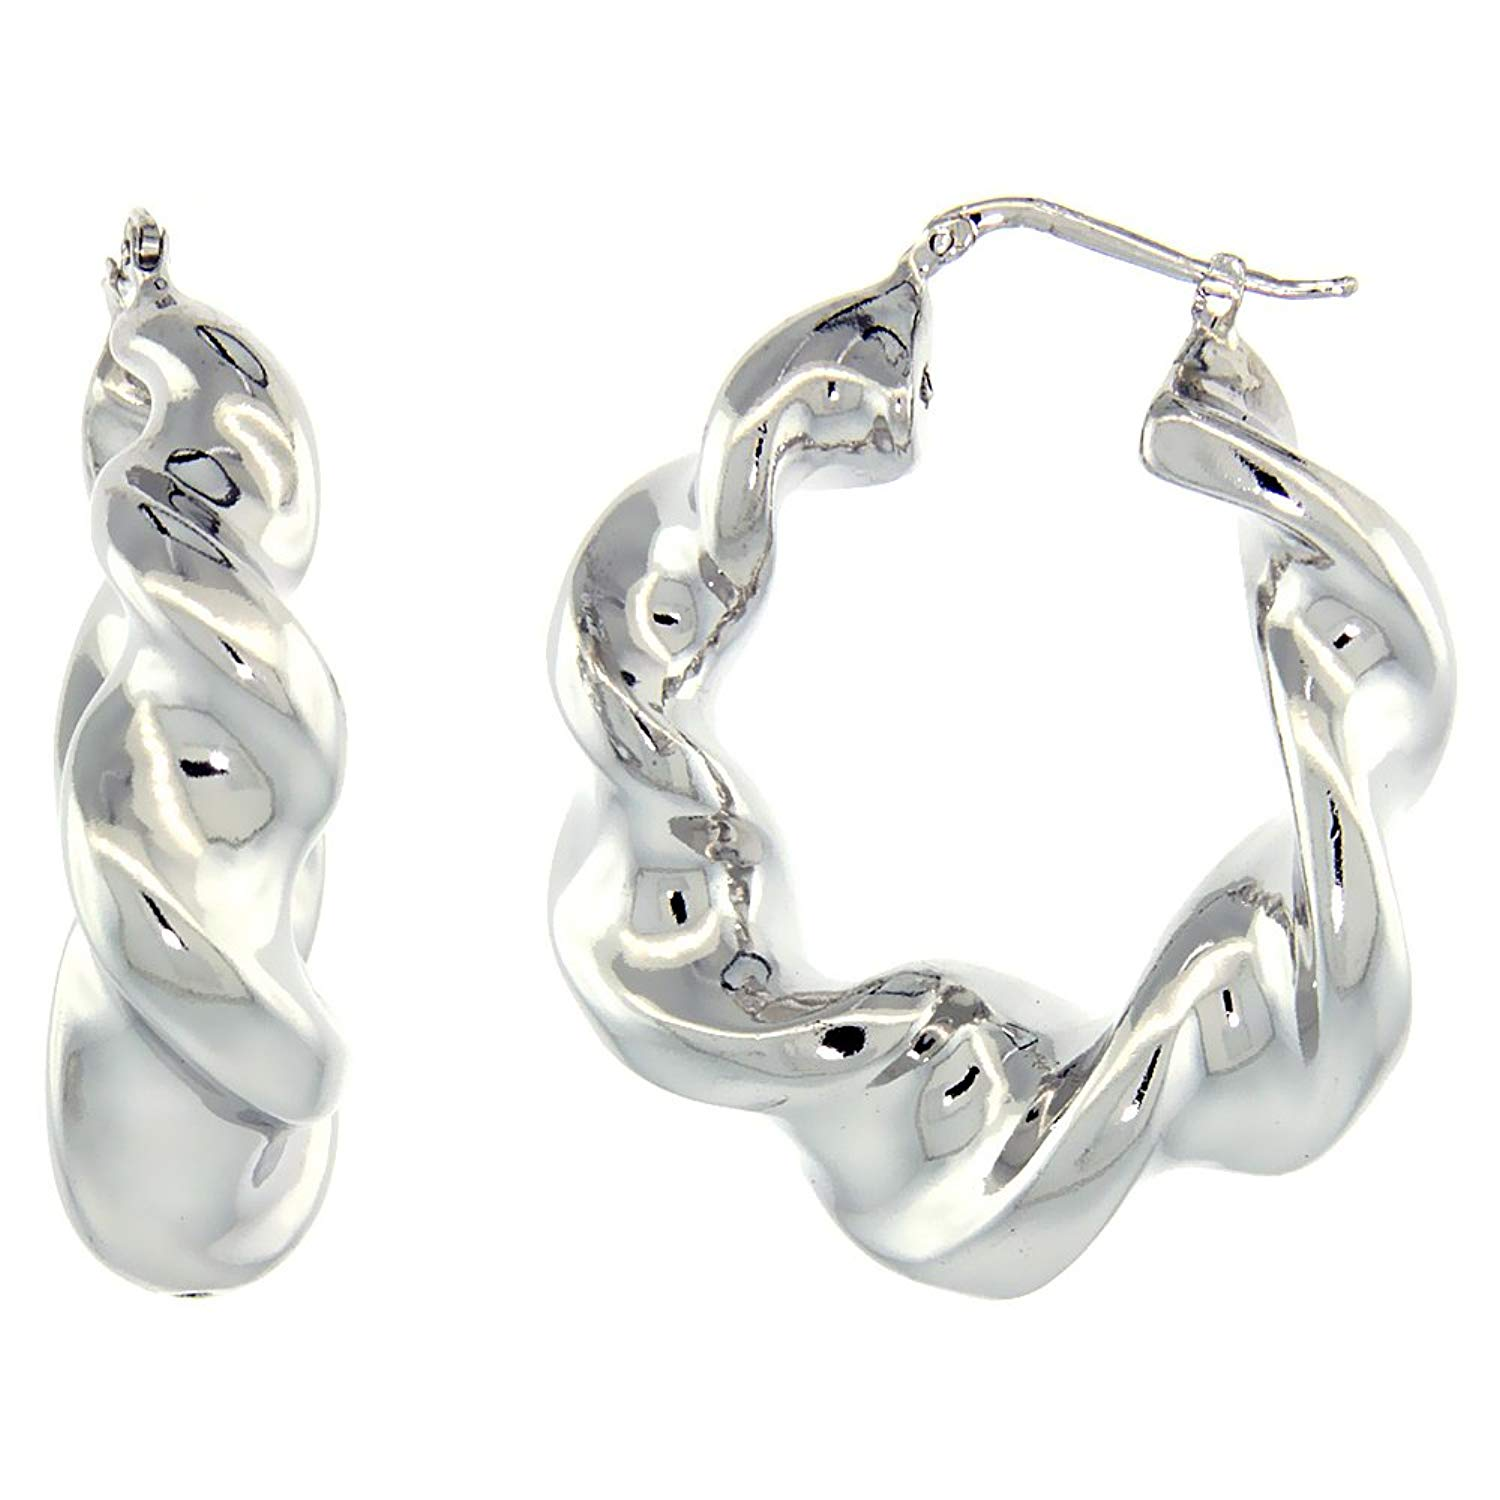 Get Quotations Sterling Silver Italian Puffy Hoop Earrings Twisted Design W White Gold Finish 1 9